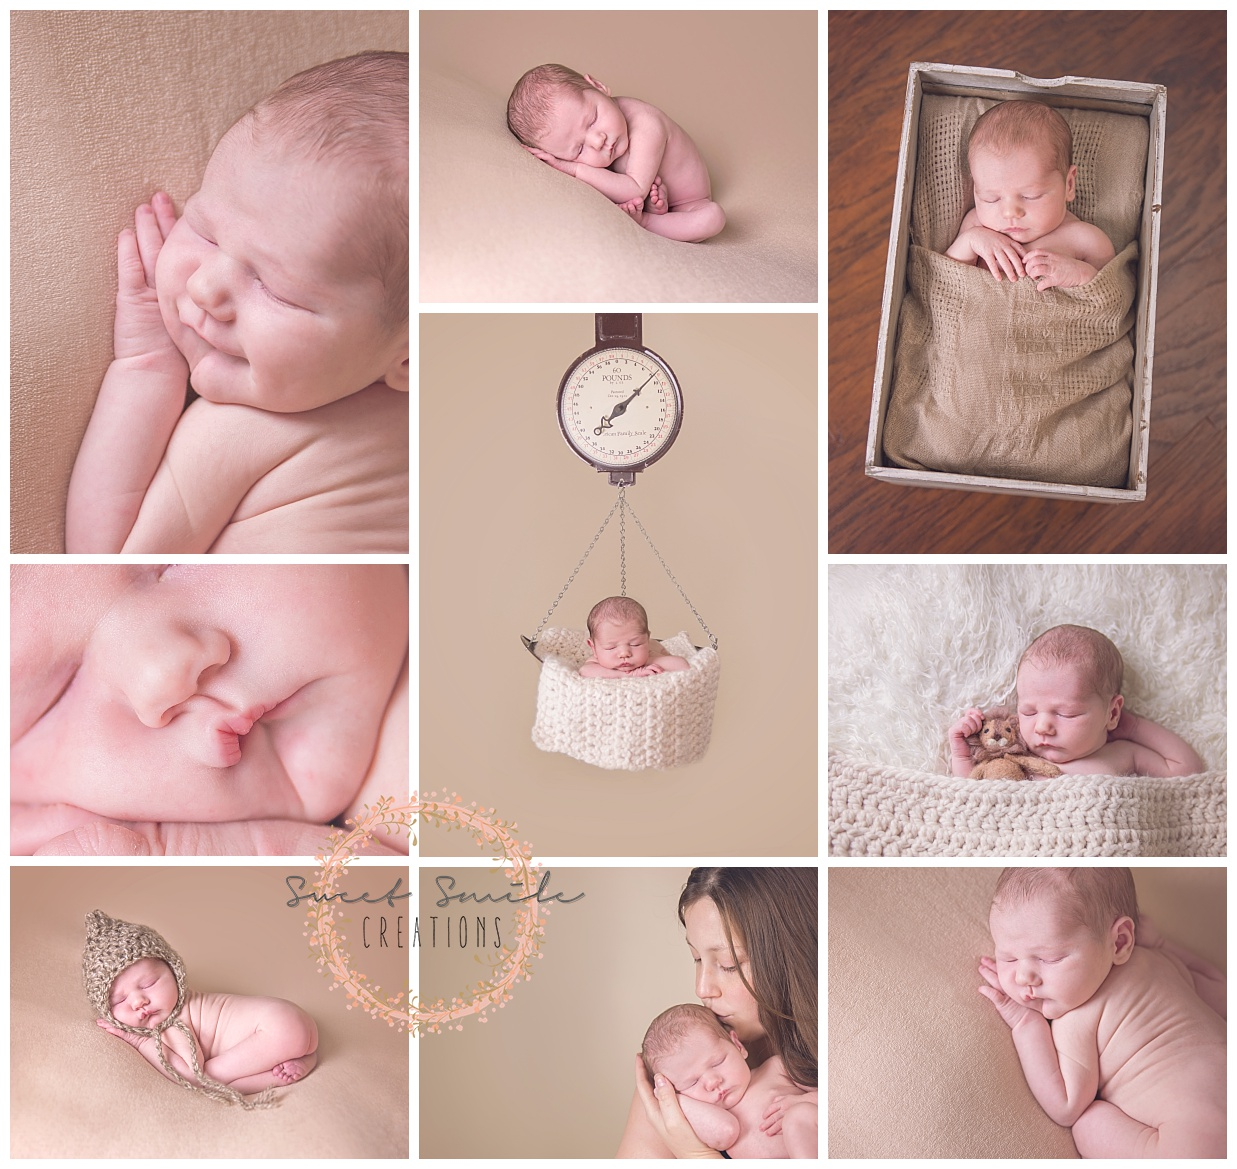 Sequim Newborn Photographer Sweet Smile Creations Blog 4.jpg